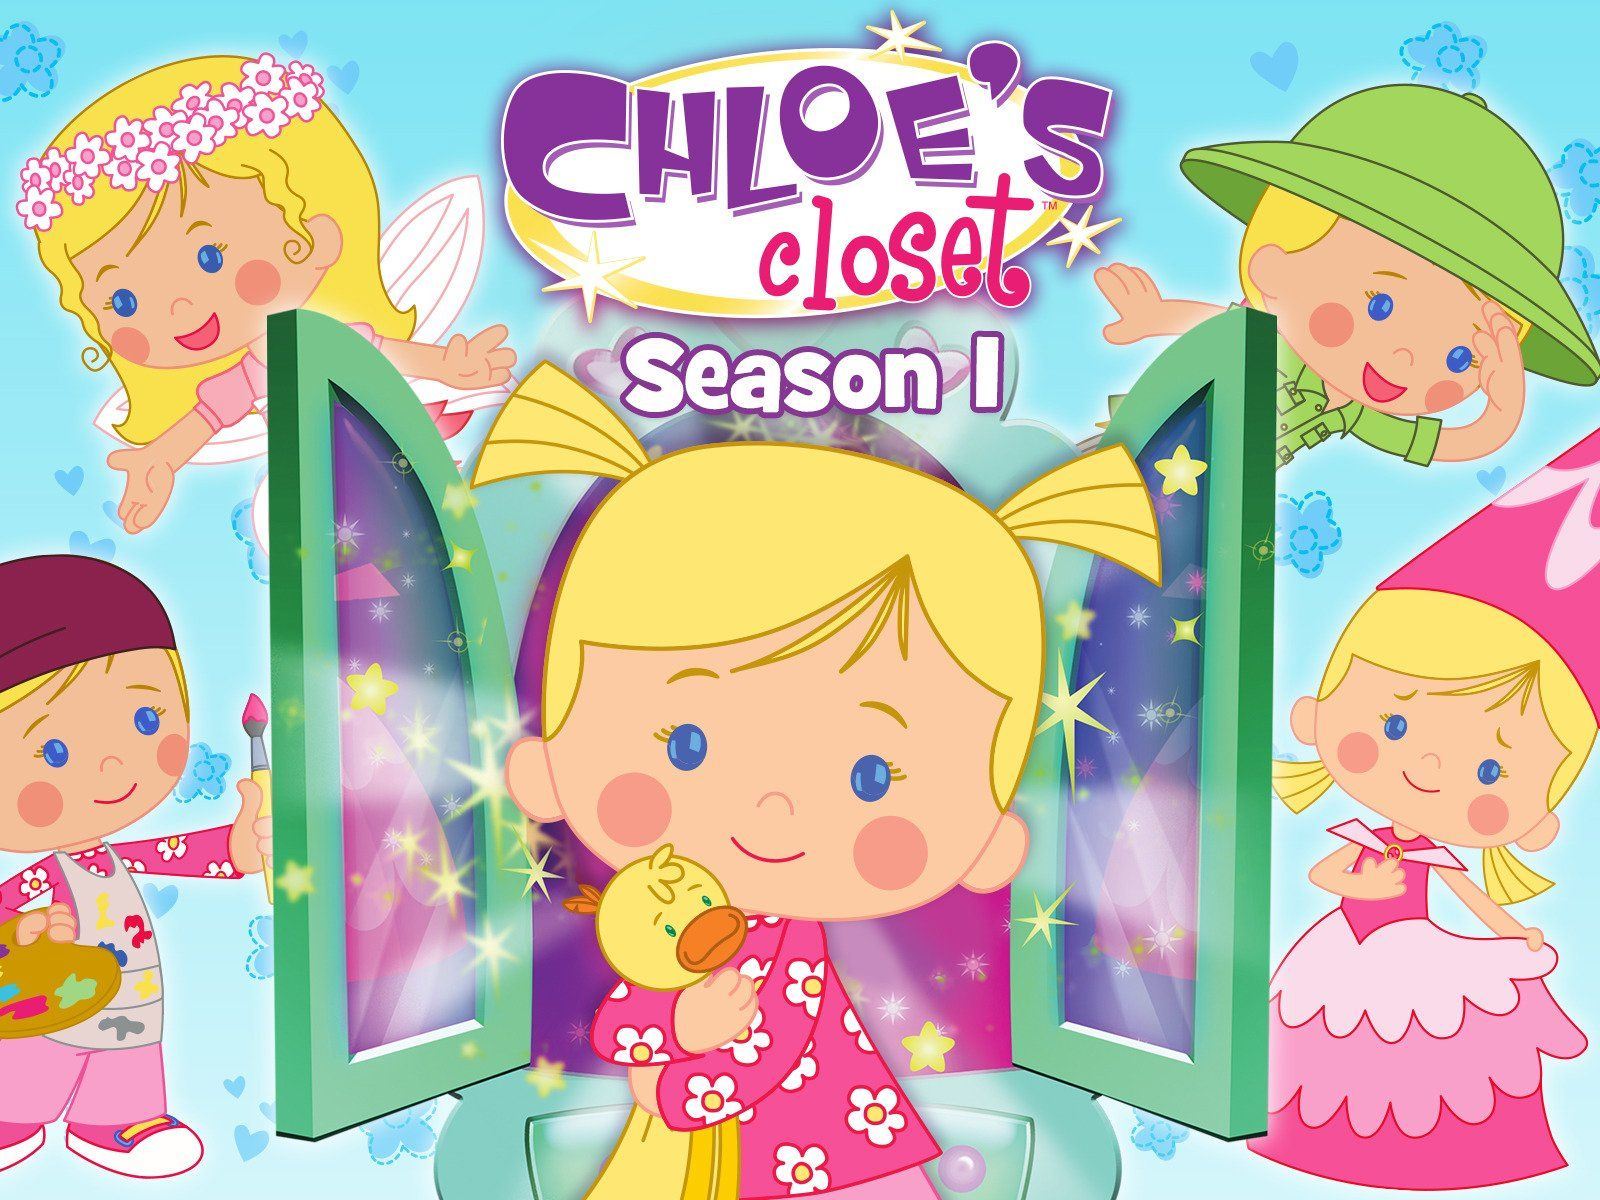 Chloes Closet baby gift fashion health deals beauty